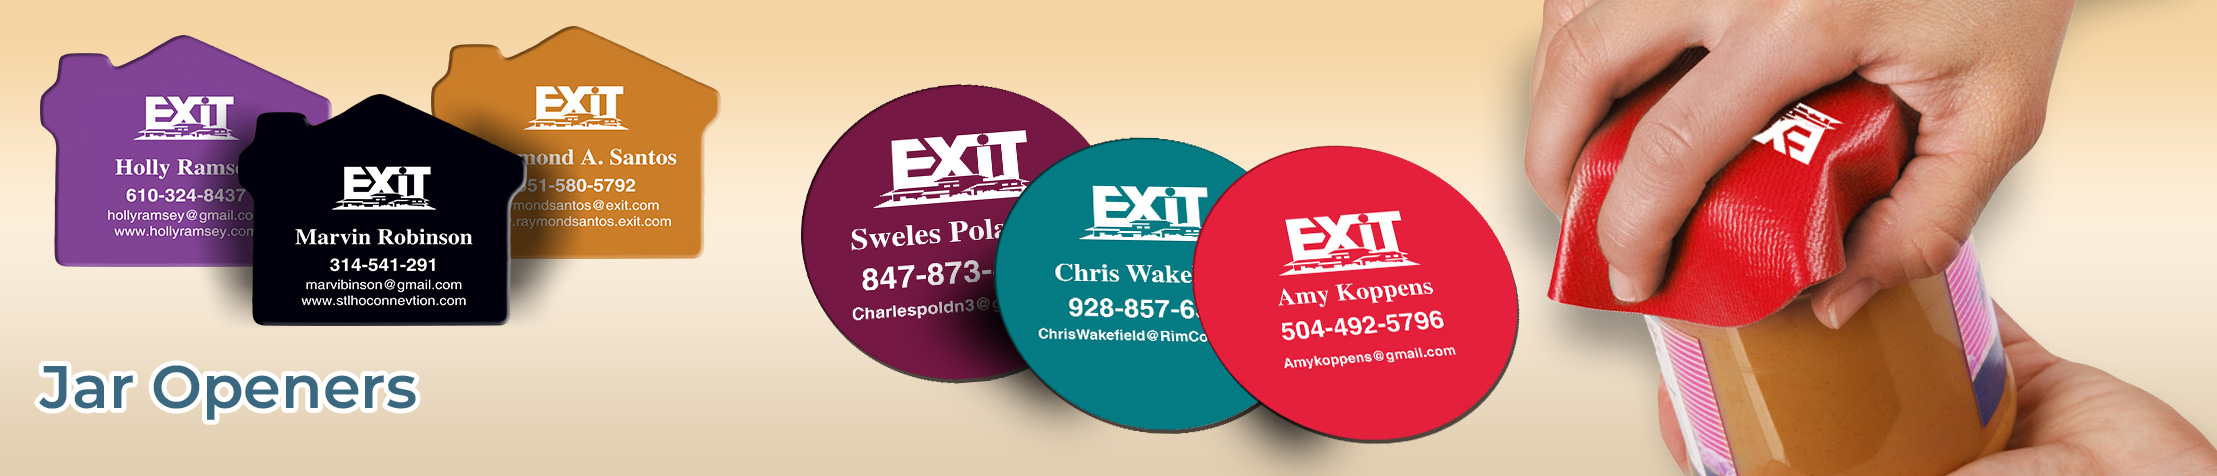 Exit Realty Real Estate Jar Openers - Exit Realty approved vendor personalized realtor promotional products | BestPrintBuy.com